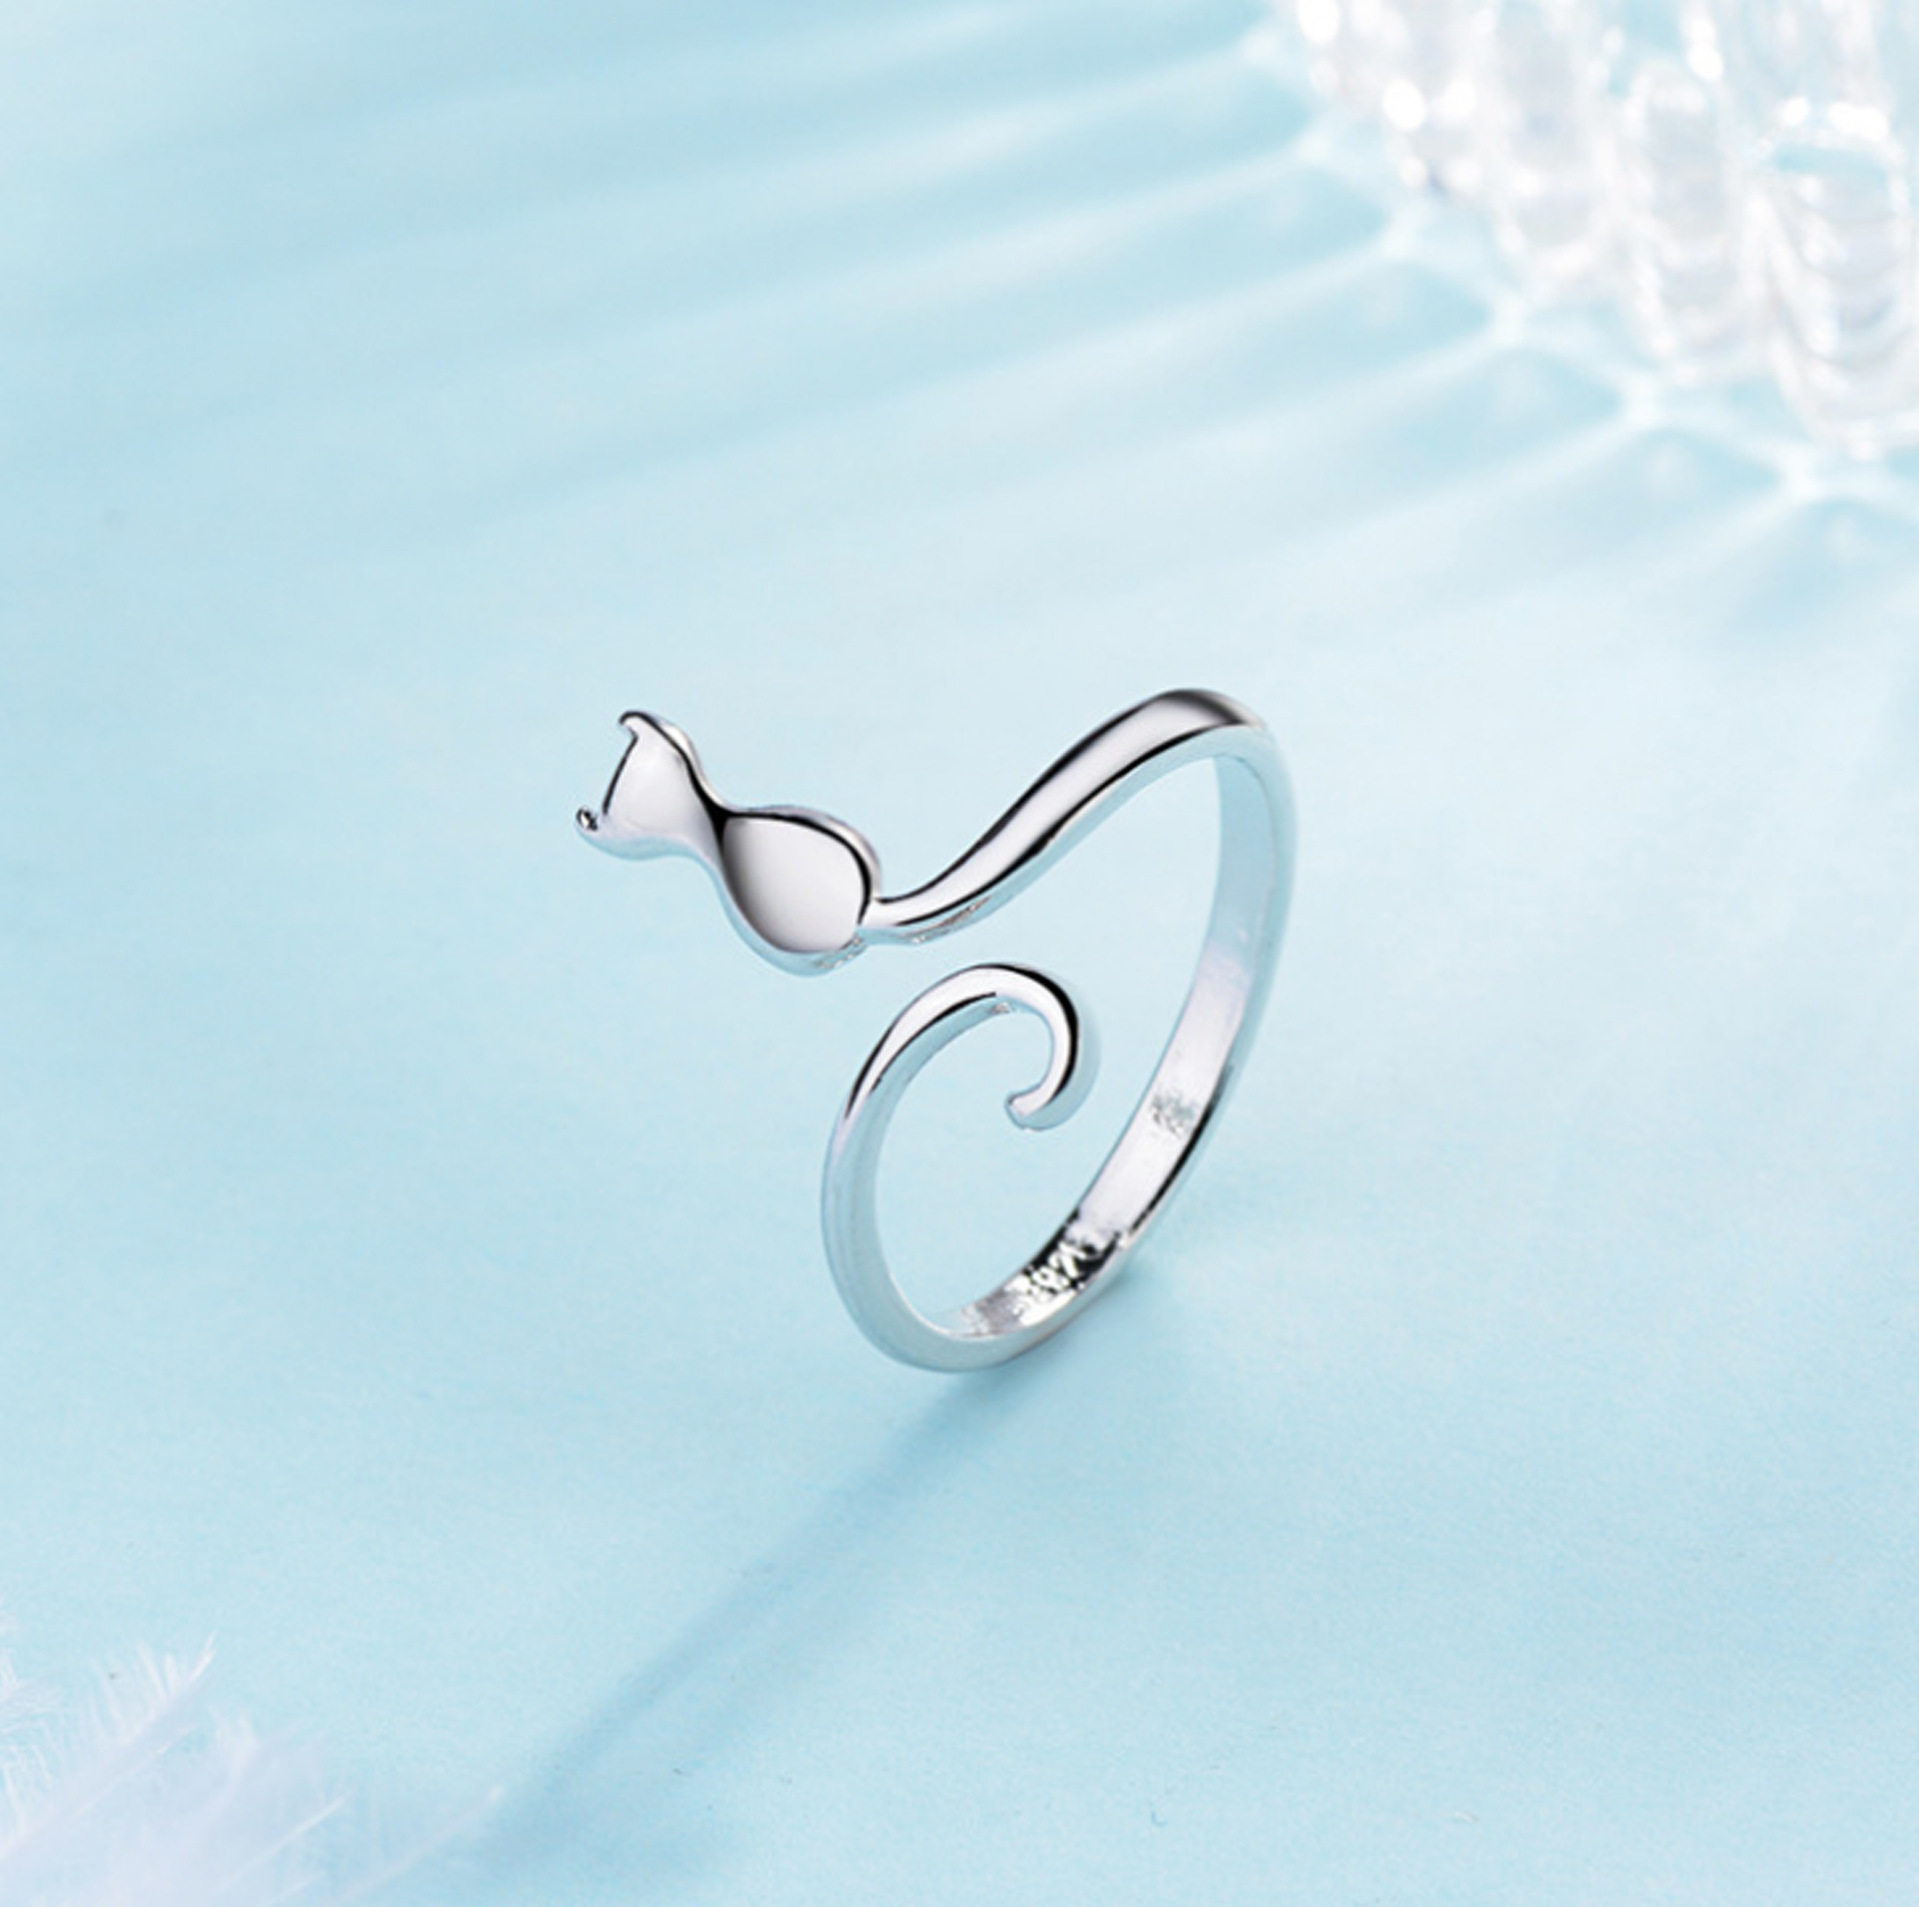 Women Finger Jewelry Adjustable Silver Plating Opening Cuff Animal Cat Ring For Women Girls